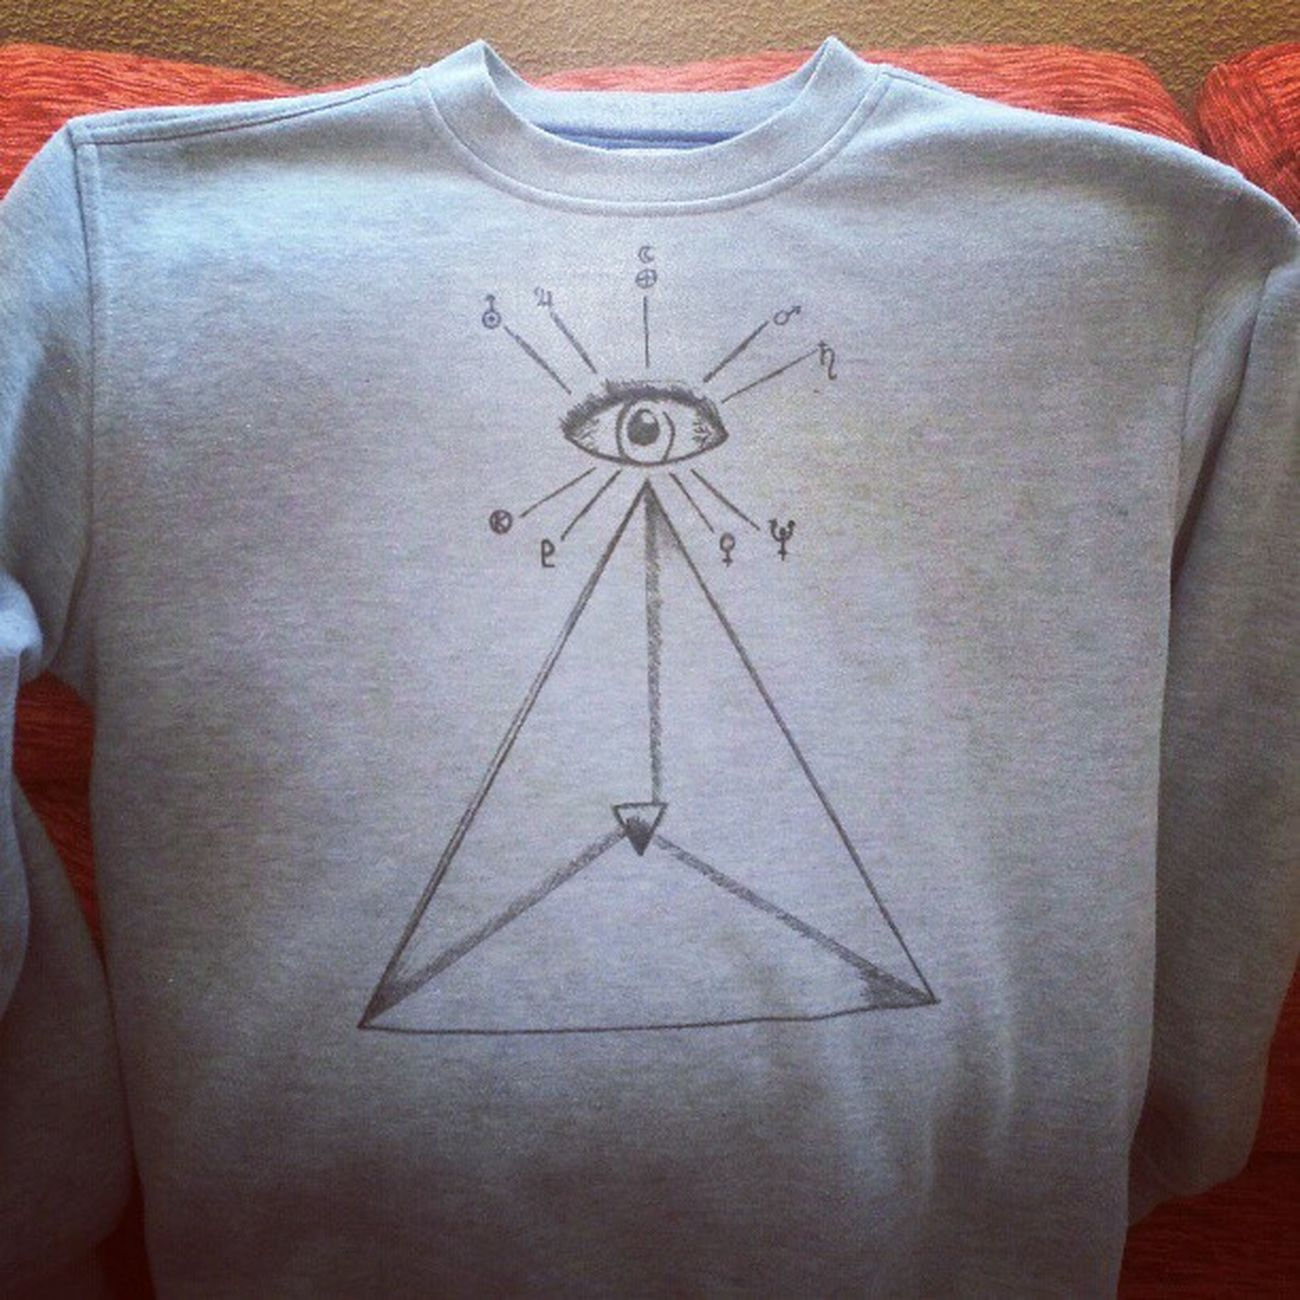 No era nueva, pero ahora lo es. #handmade #diy Igers Instagood Triangle Campamentokrustydiy Eye Clothes Illustration Design Madrid Handmade Craft Photooftheday Astronomy Shirt DIY Planets Igersmadrid